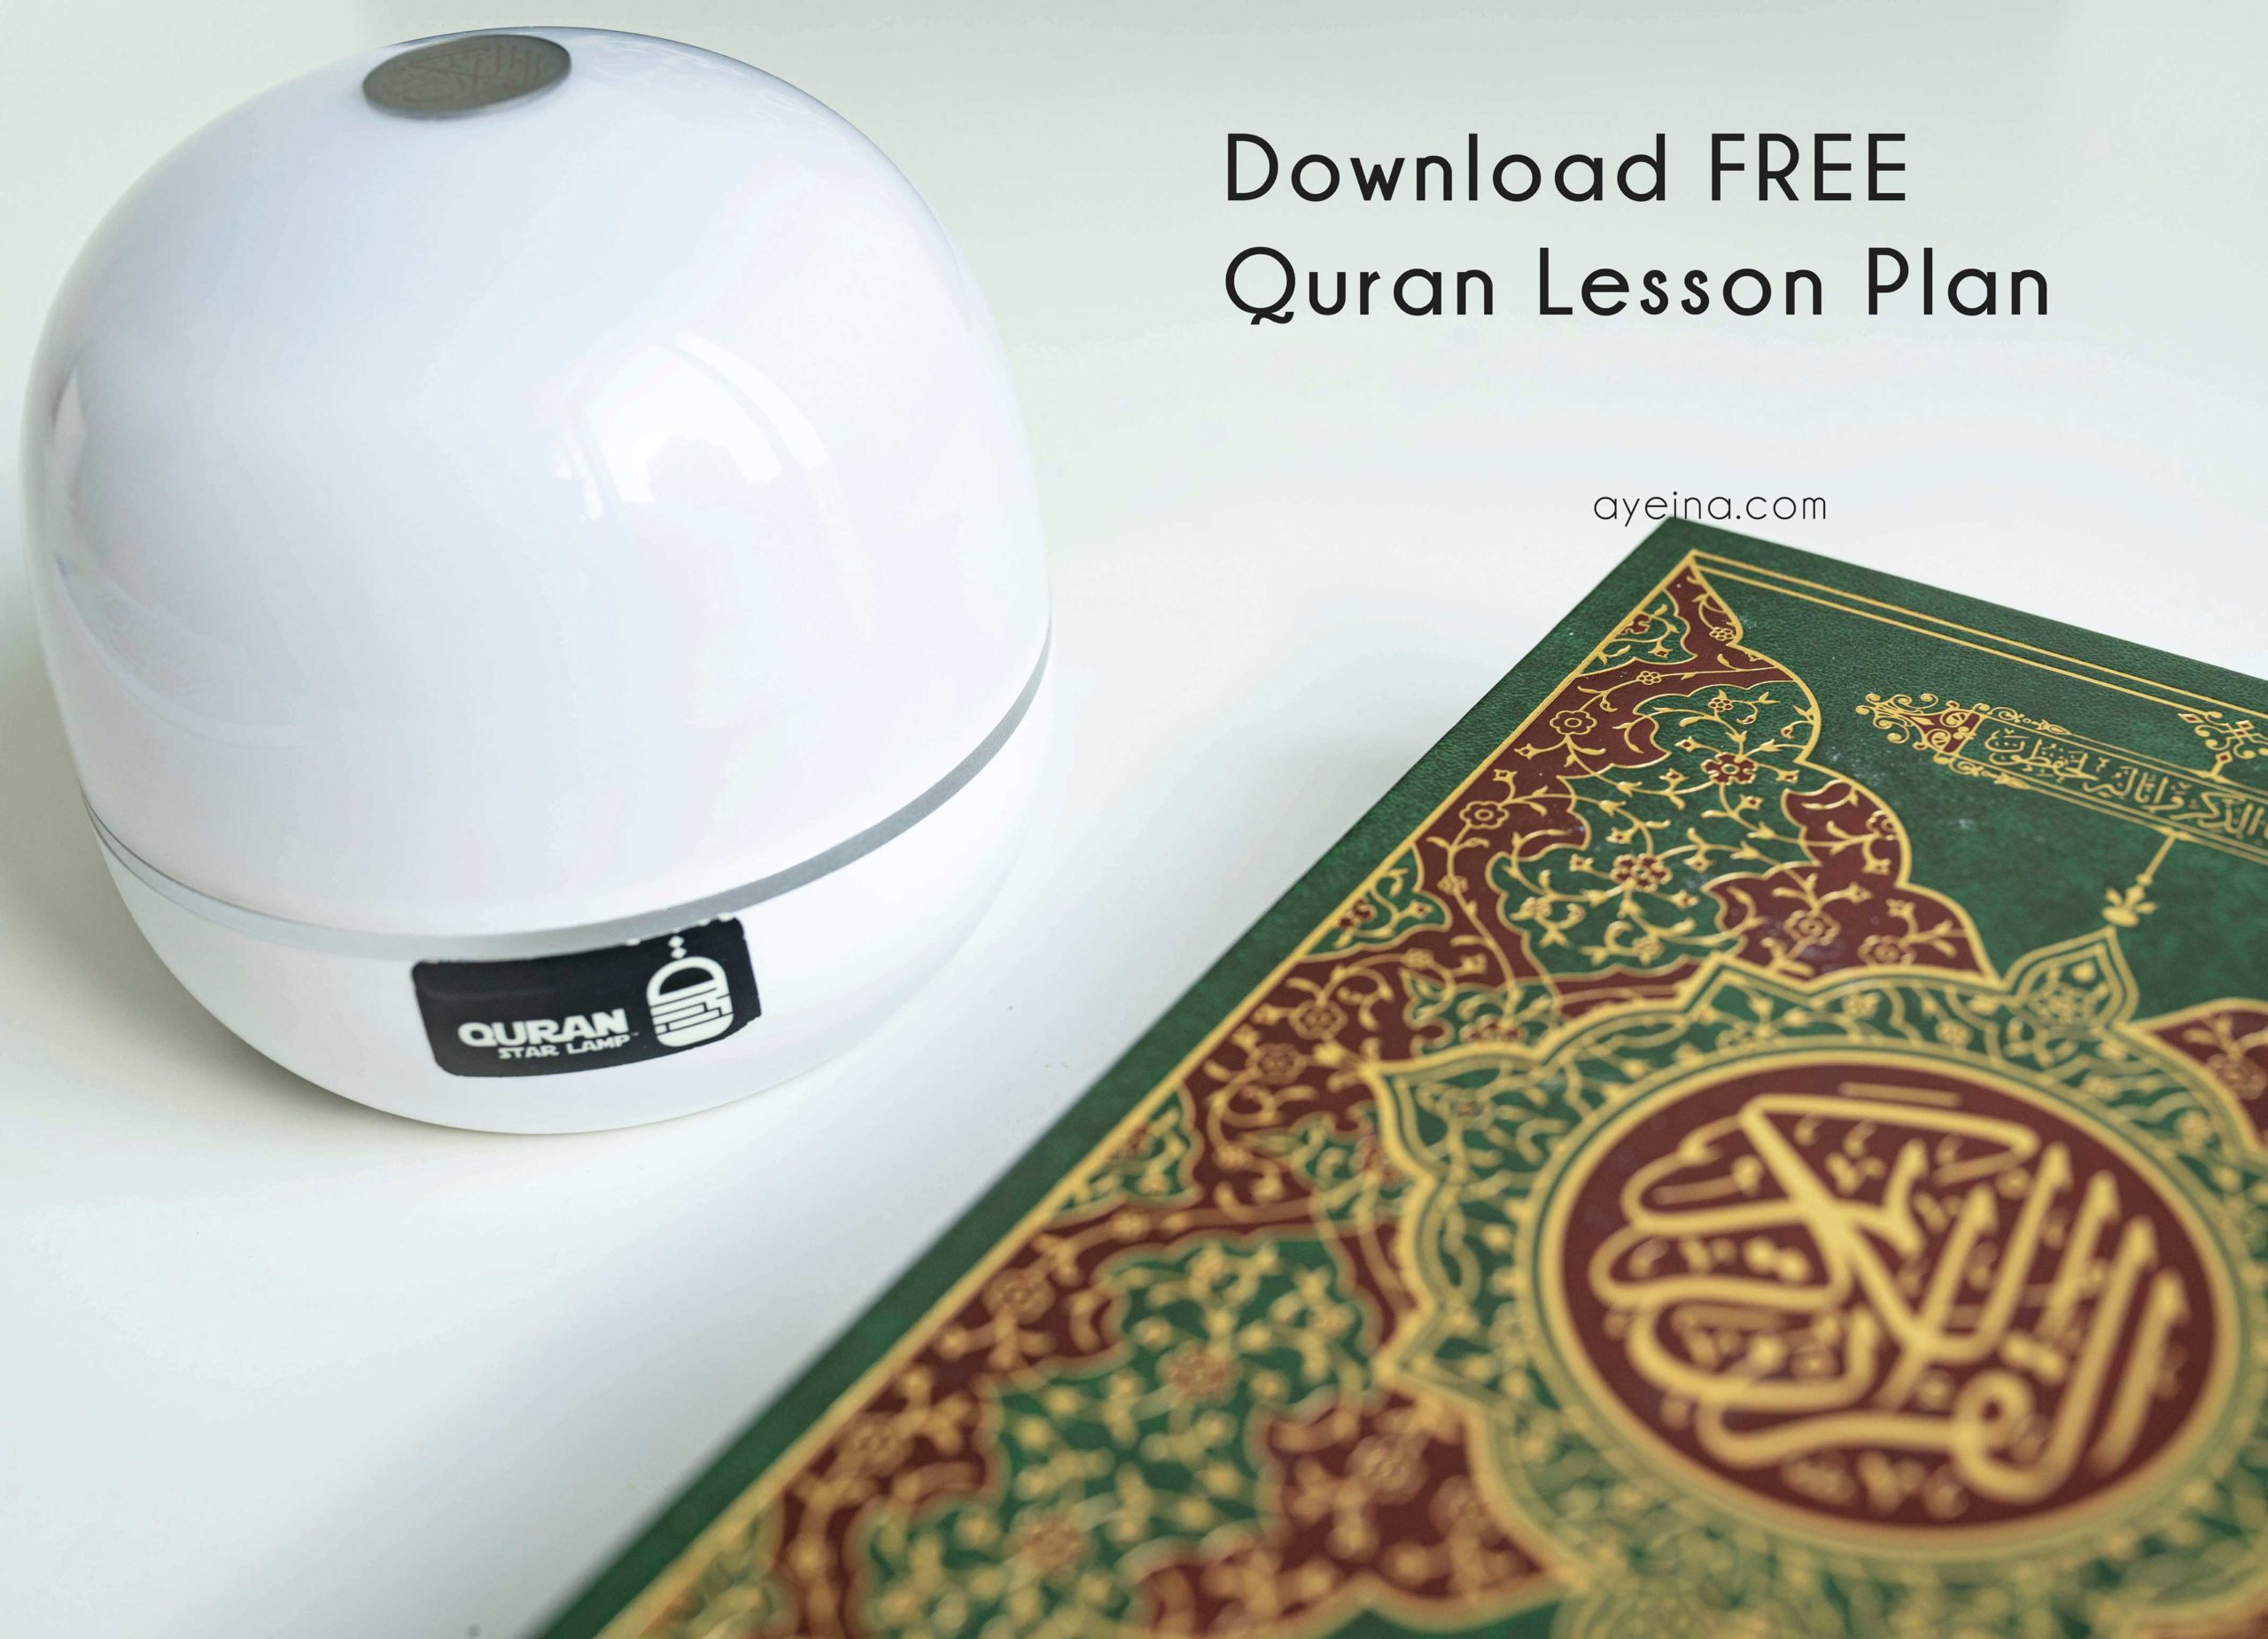 quran star lamp with quran free lesson plan